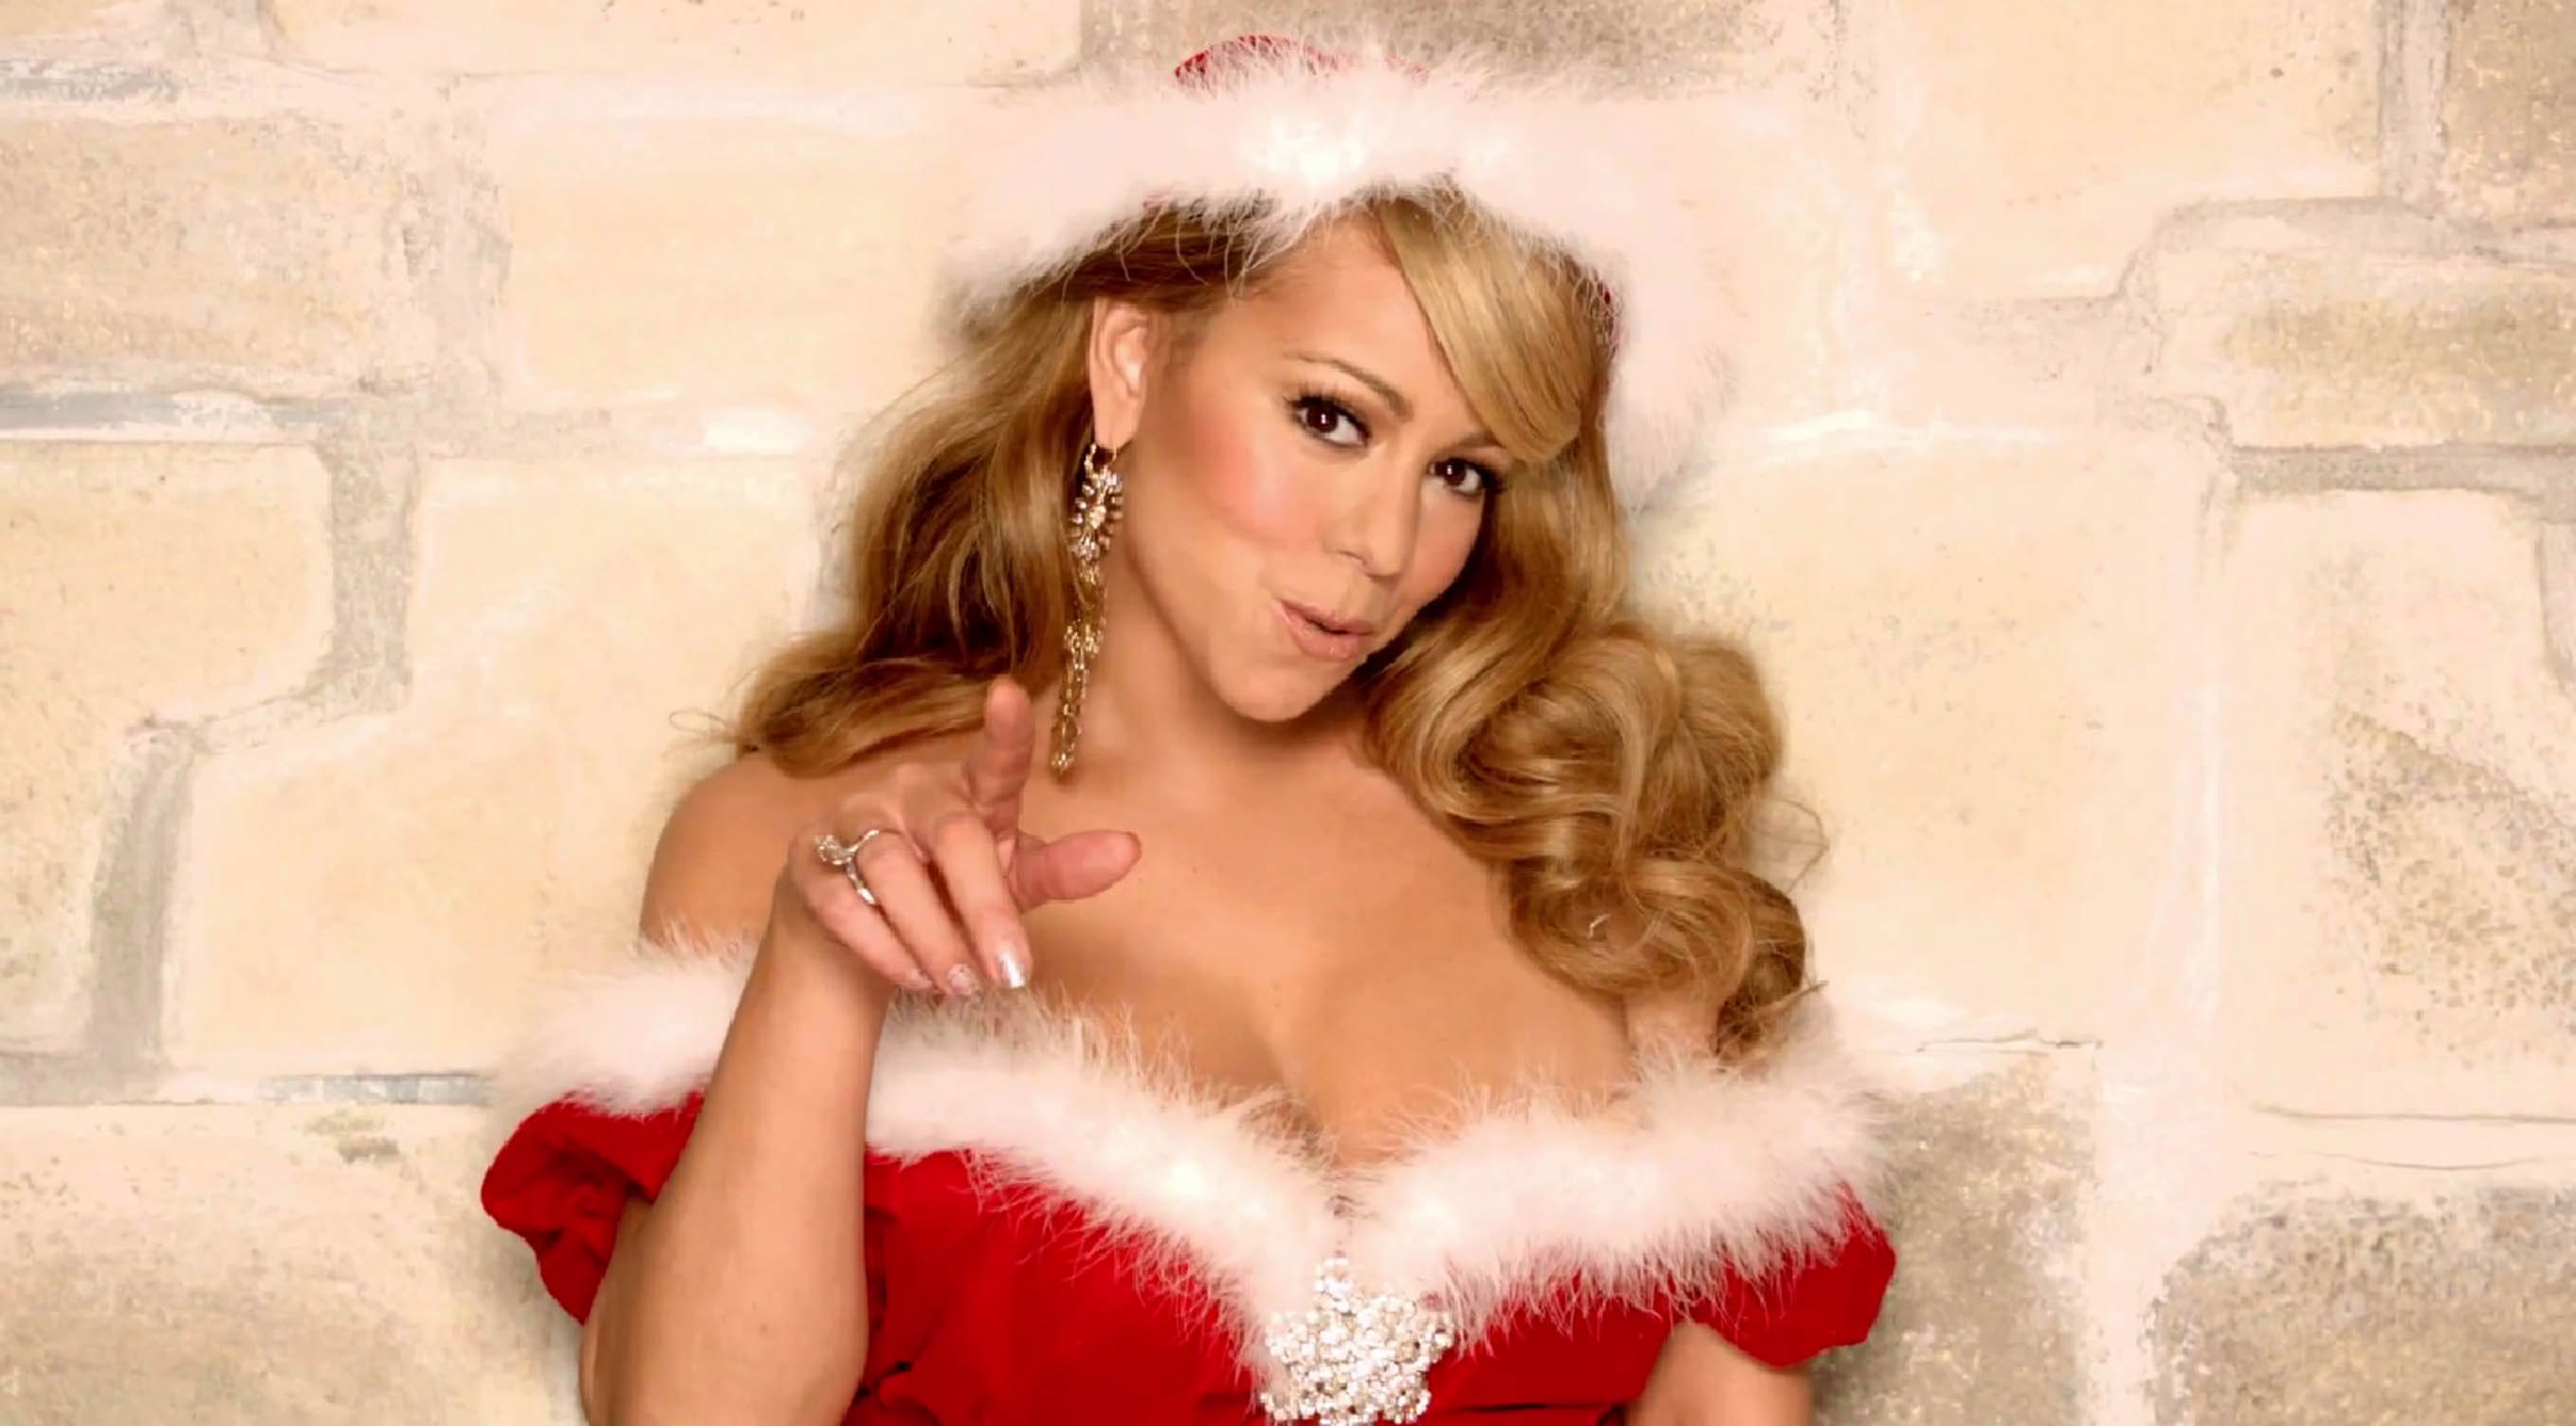 Mariah Carey Catat Tiga Rekor Guinness World Records Sekaligus Berkat Single 'All I Want For Christmas Is You'